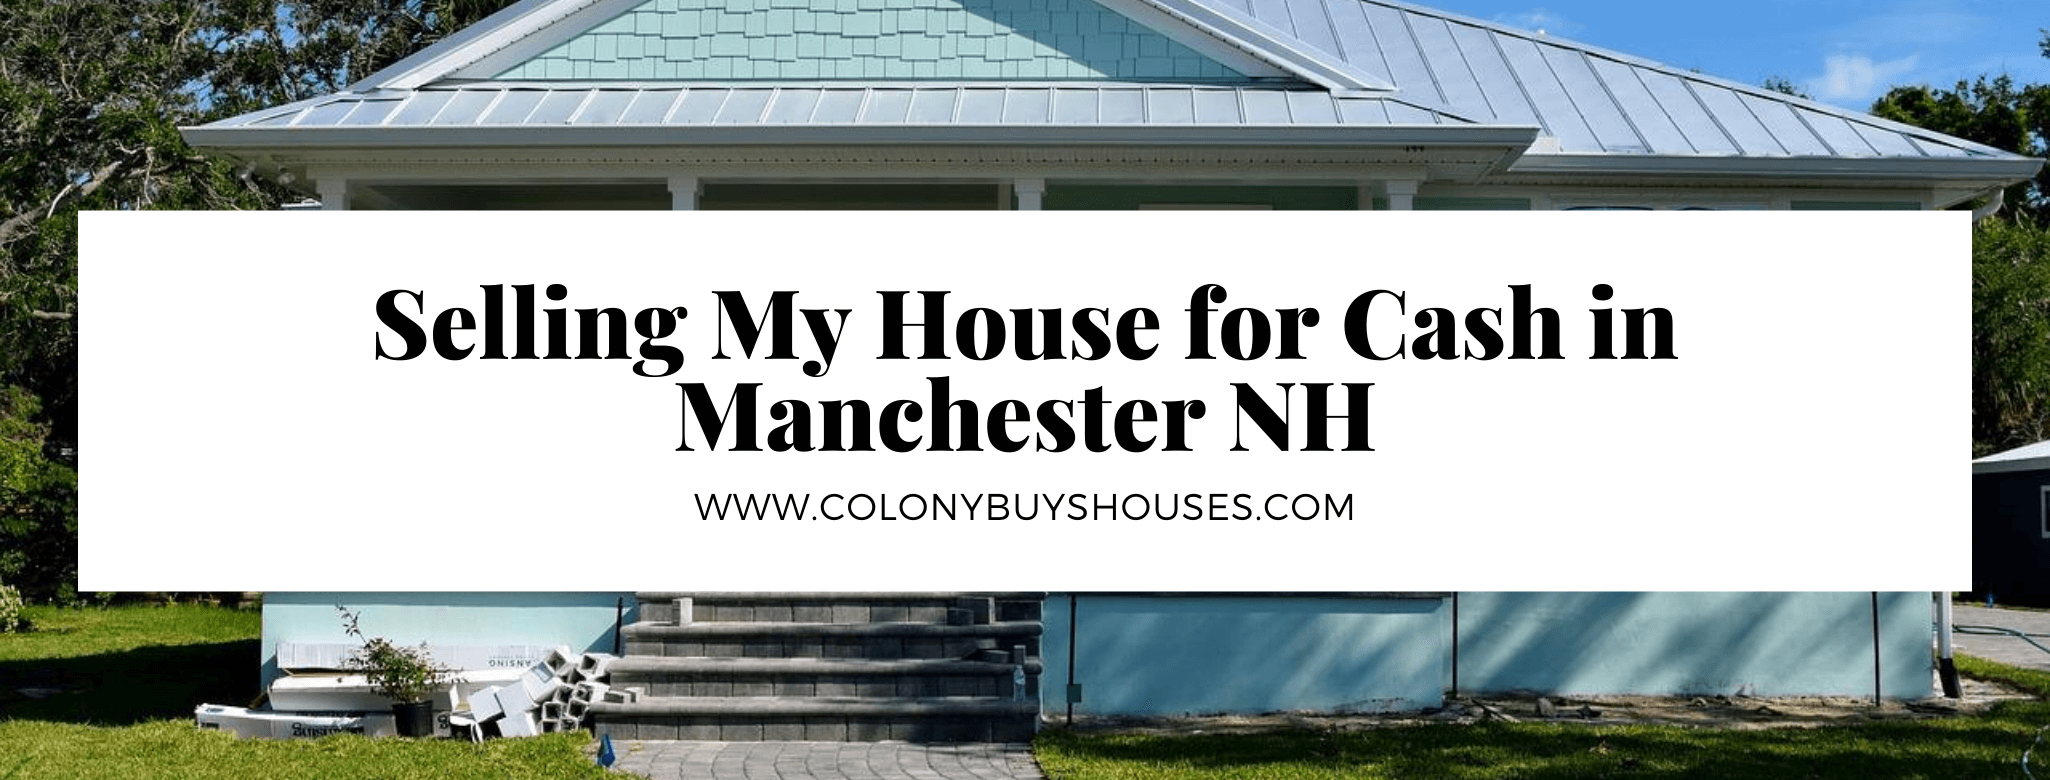 We buy your property in Manchester NH